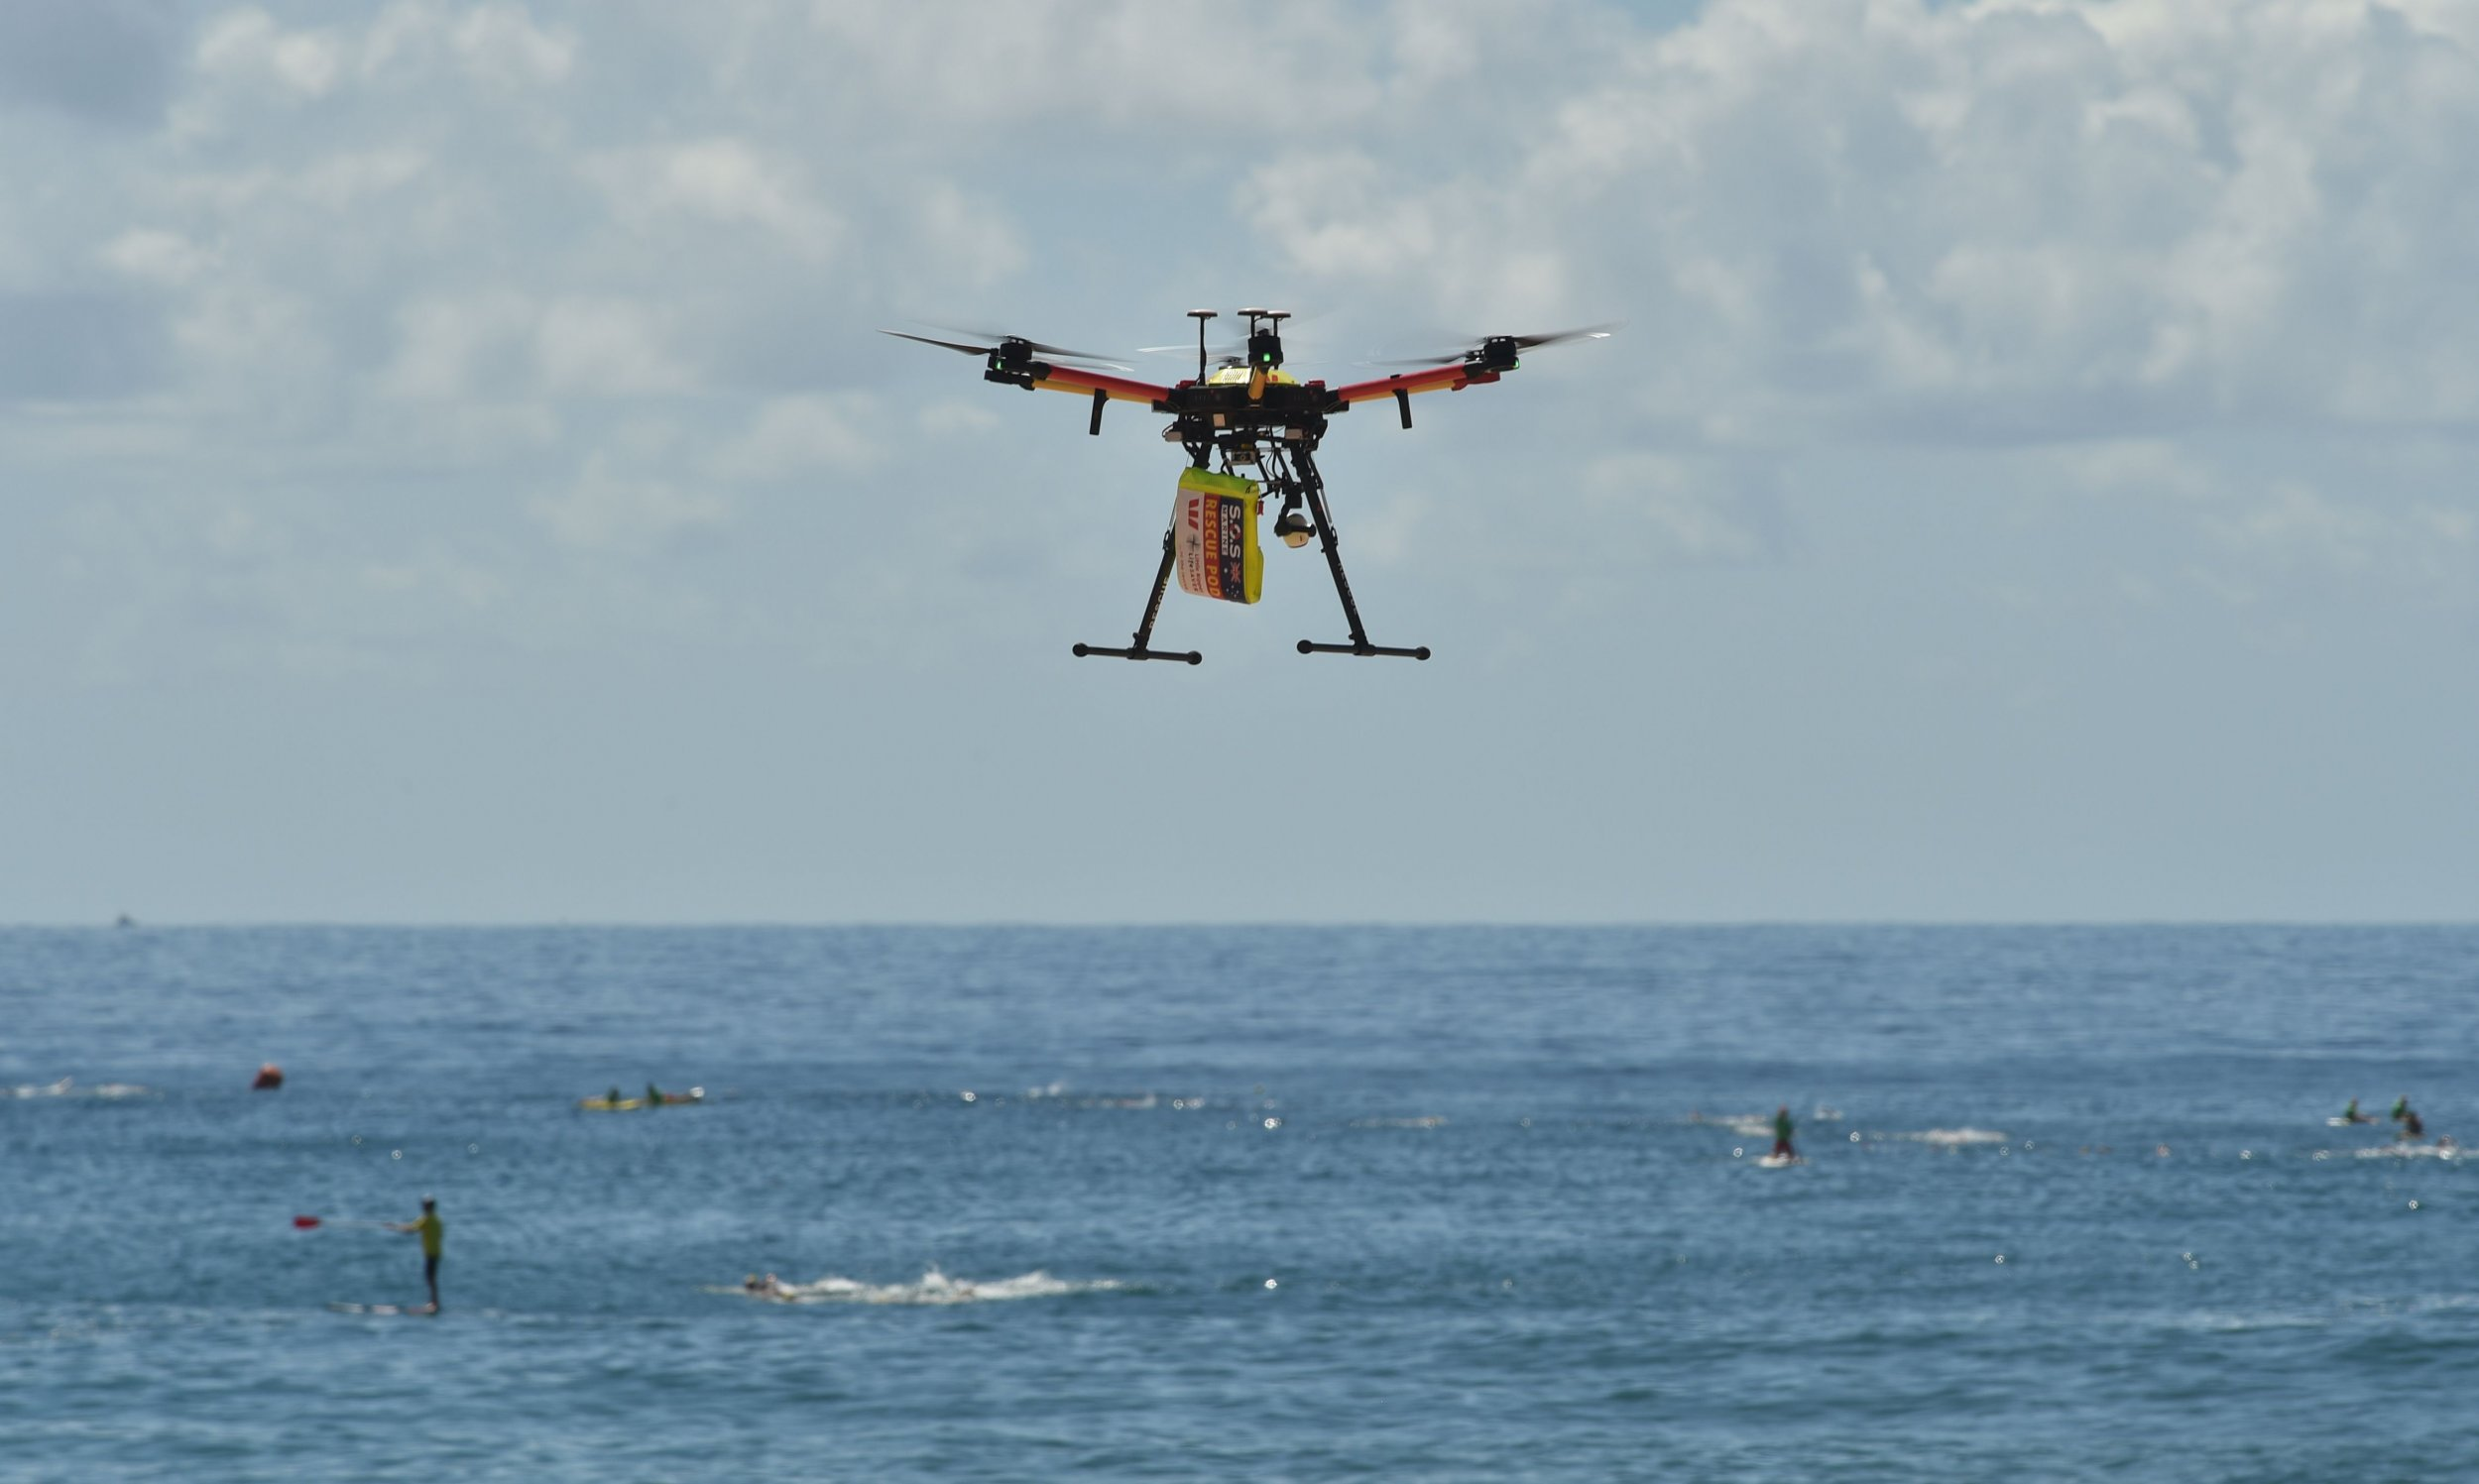 Watch a Drone Help Save the Lives of Australian Swimmers in Historic Use of Technology From the Beach